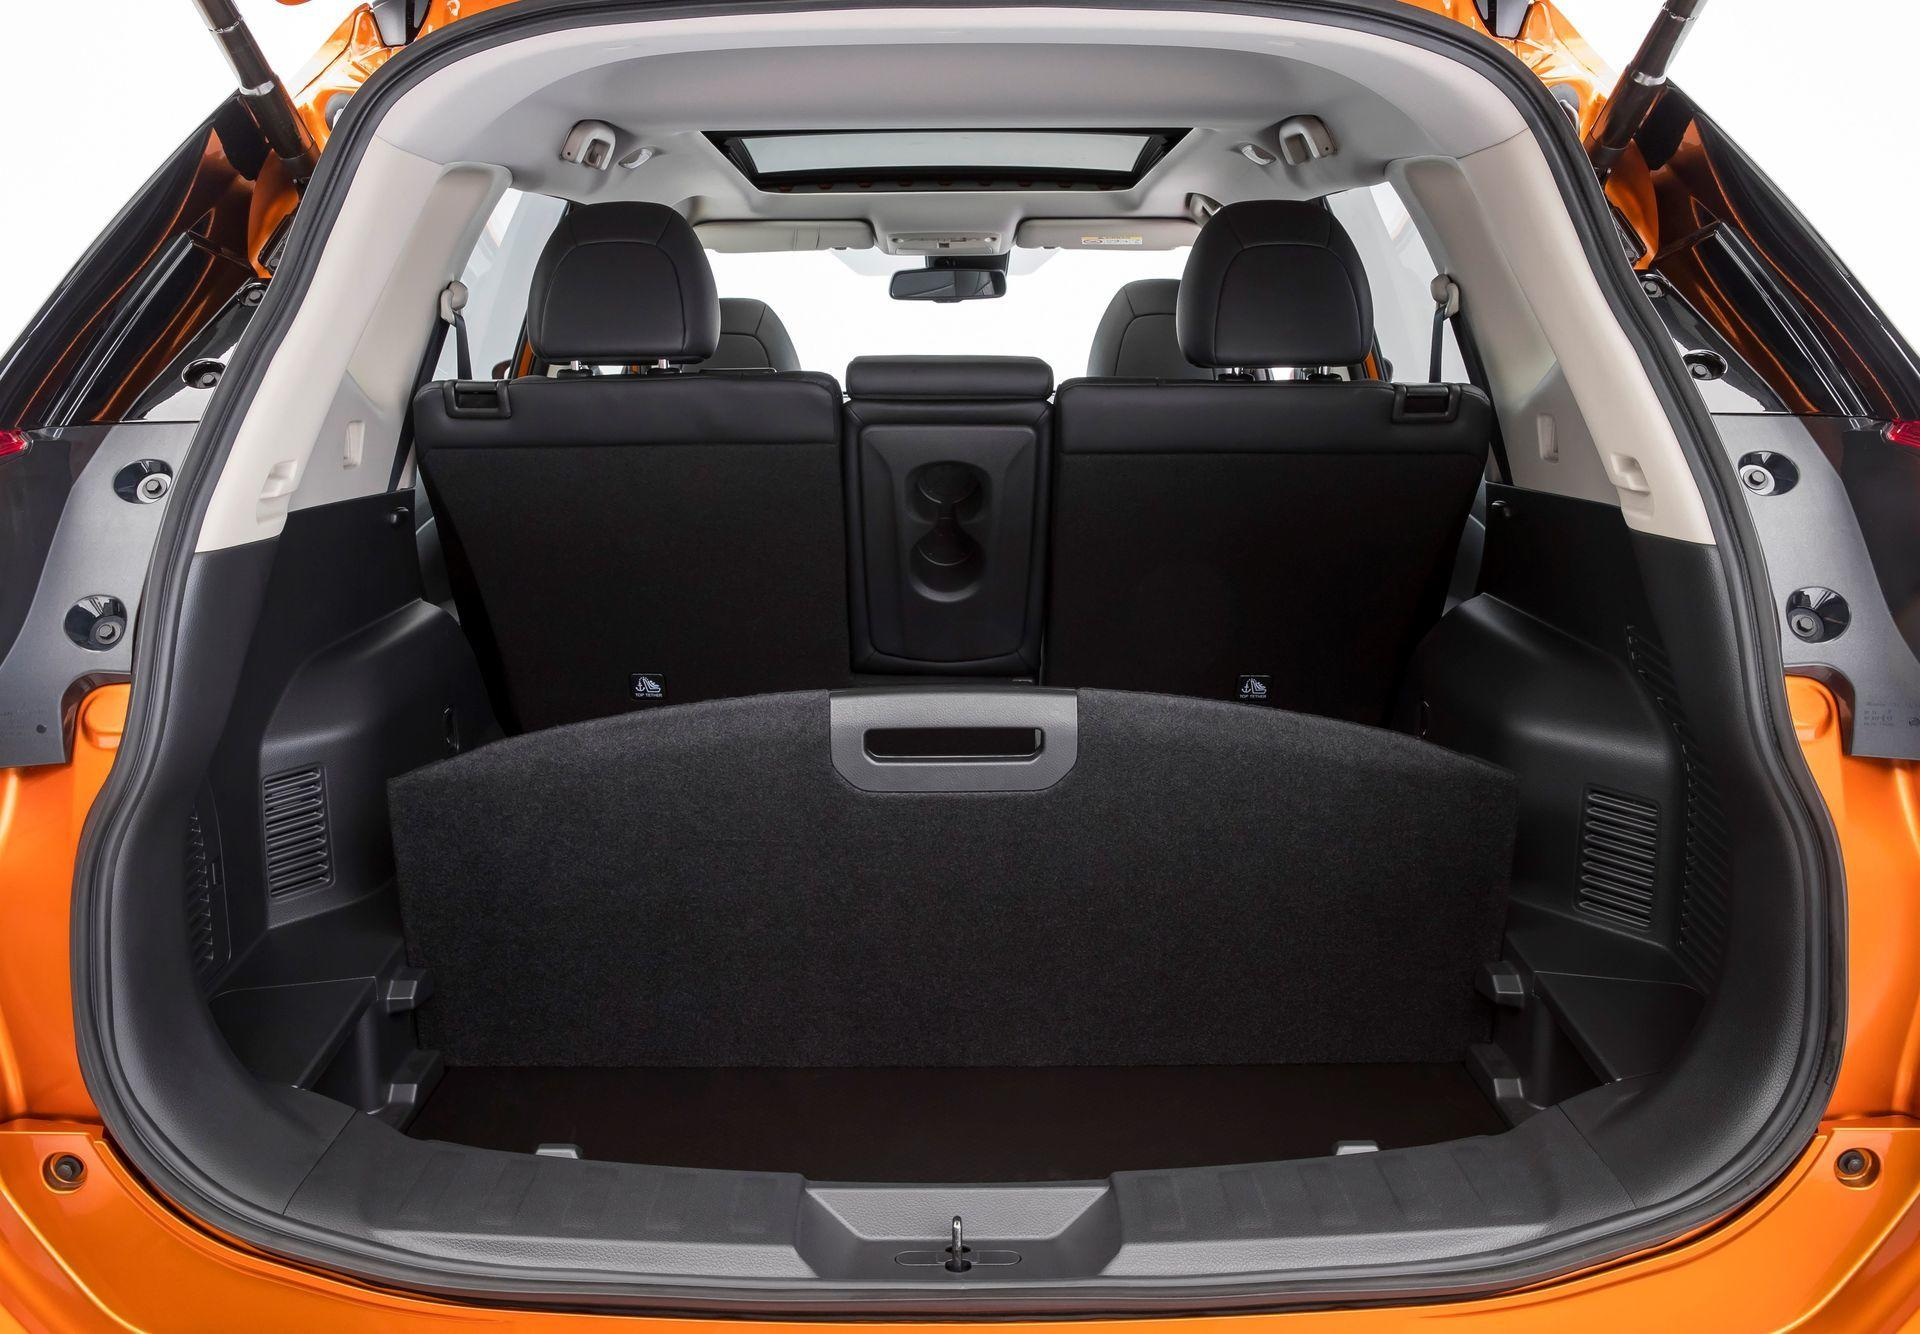 nissan x trail 2018 lavado de cara y m s tecnolog a para el todocamino superventas de nissan. Black Bedroom Furniture Sets. Home Design Ideas